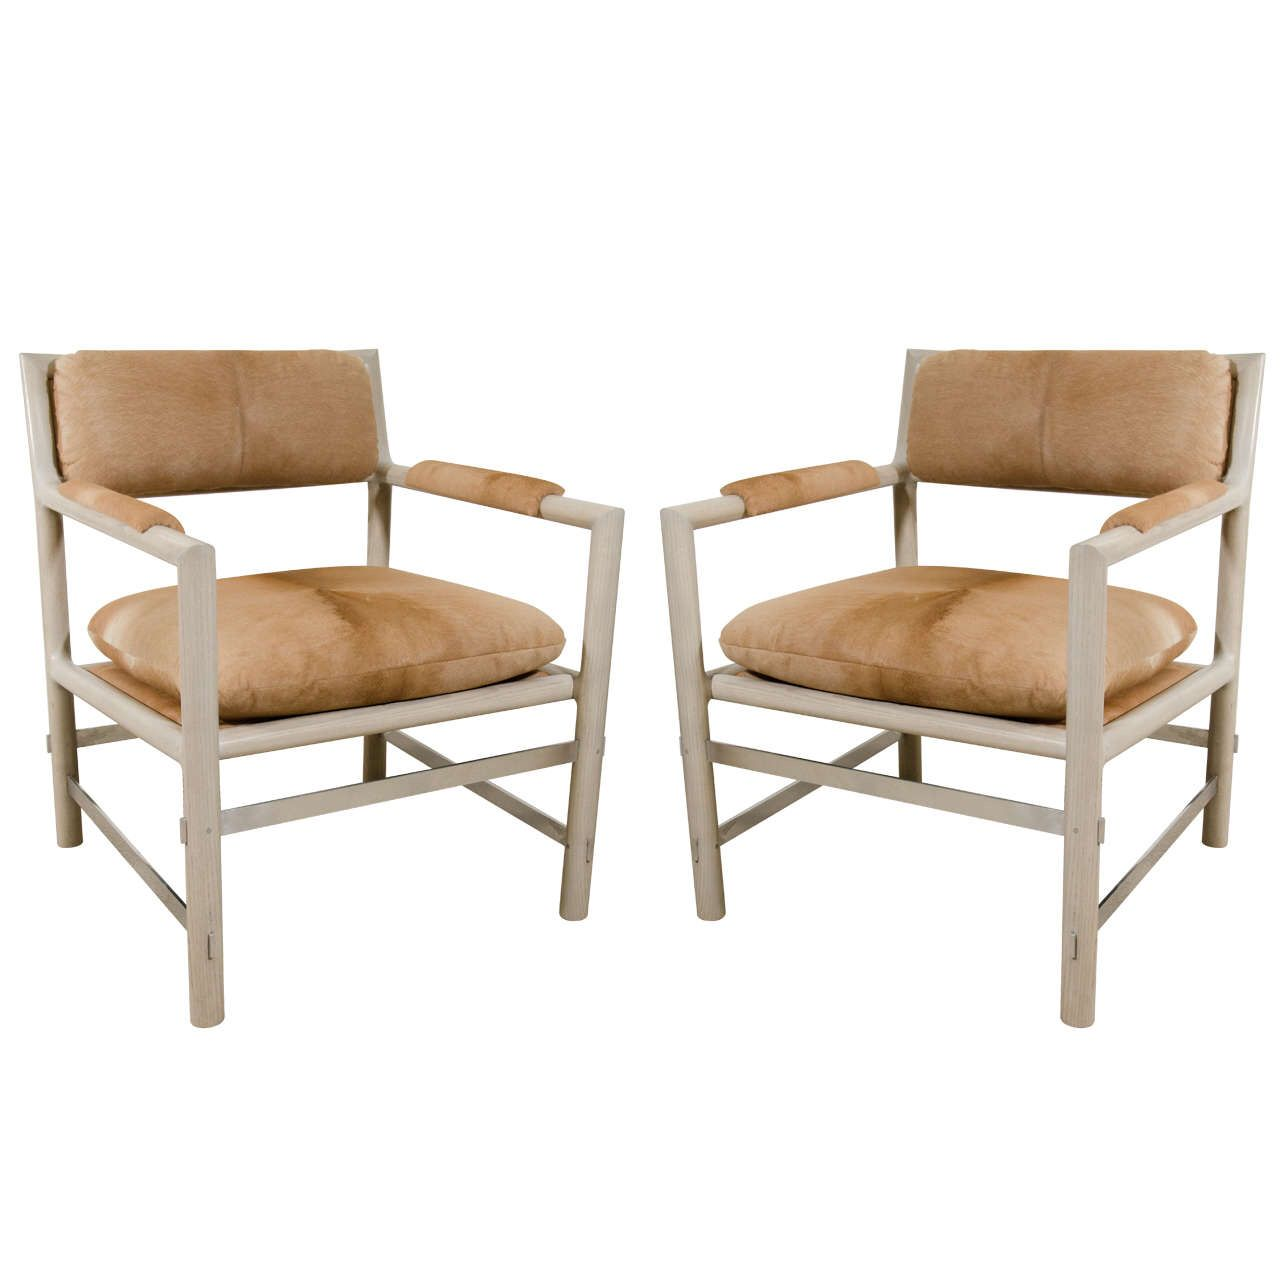 Pair Of Edward Wormley For Dunbar Chairs In Cowhide, Circa 1960, USA | See